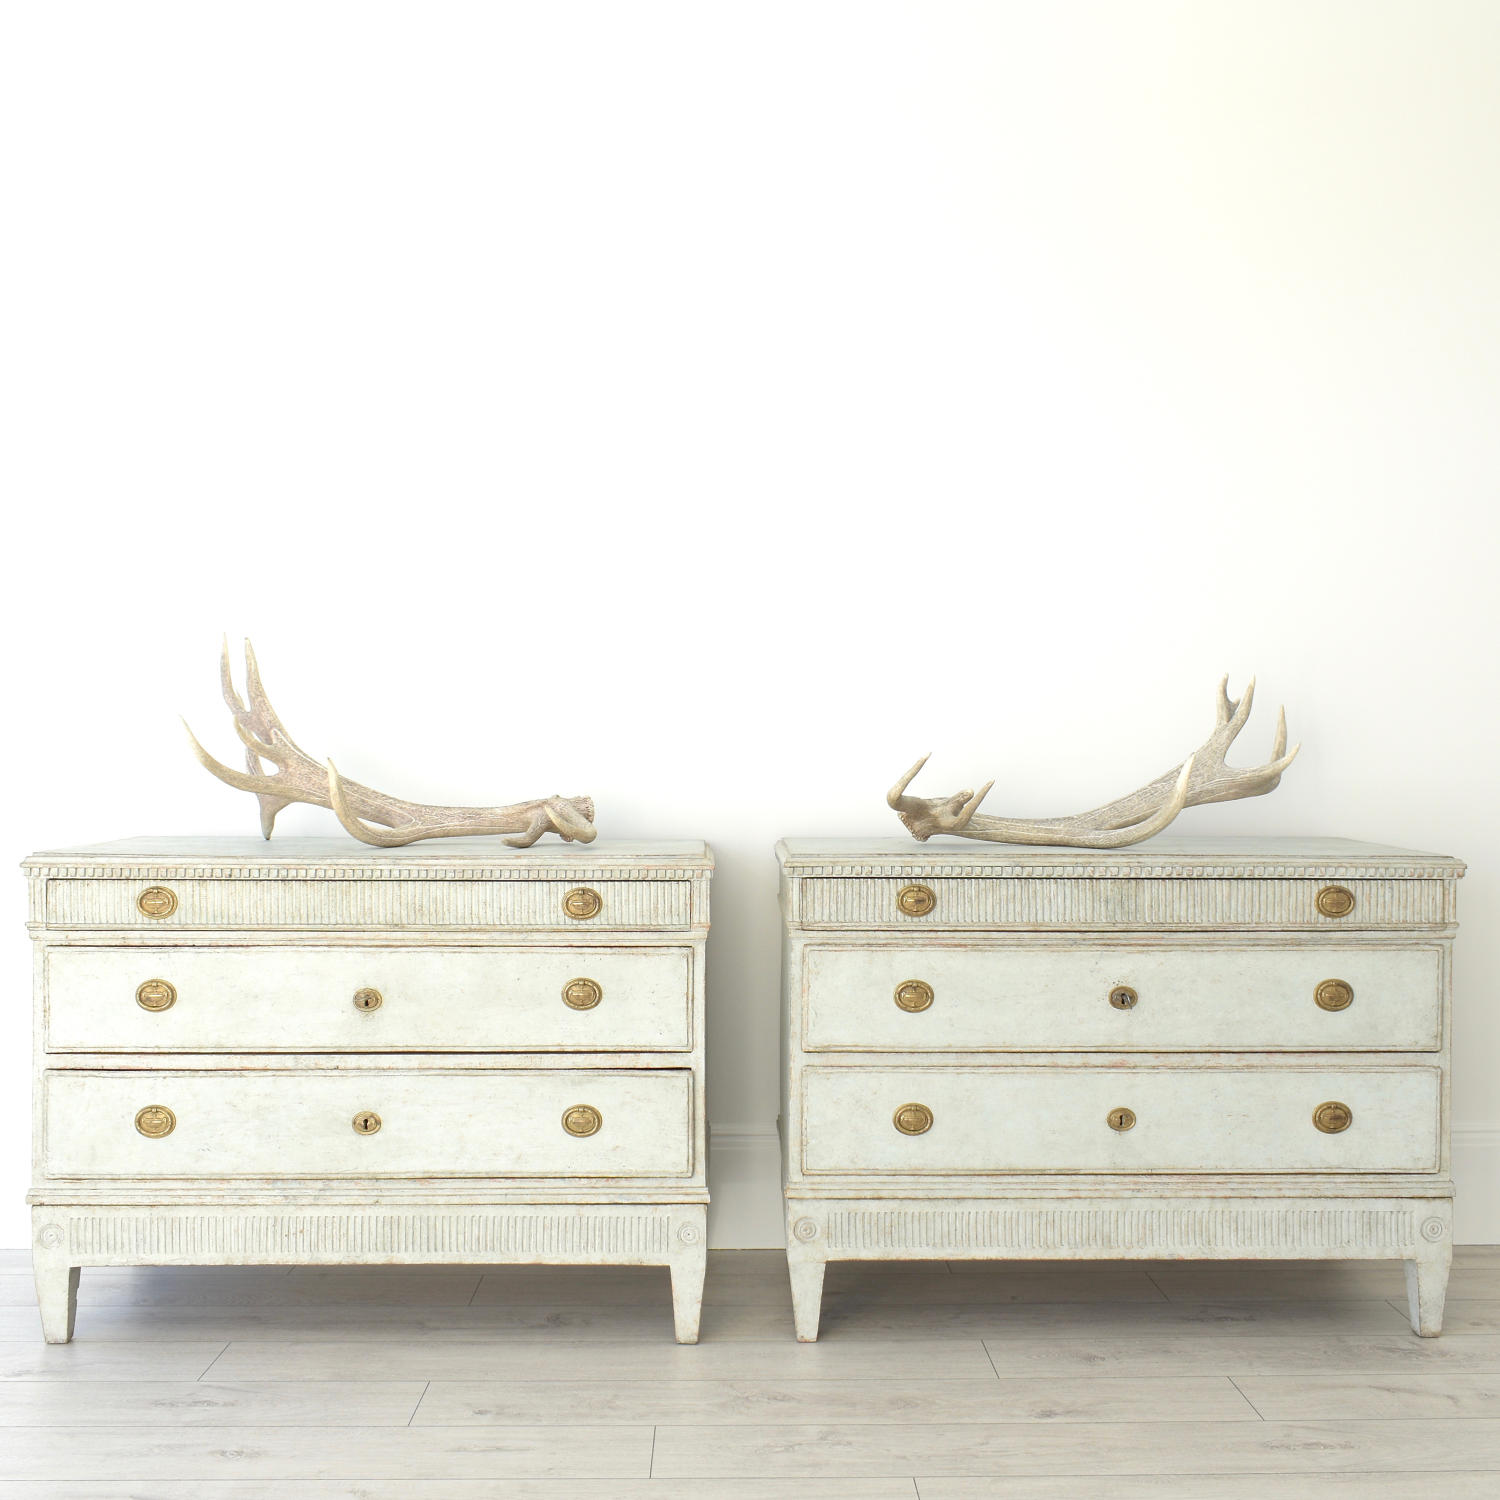 MAGNIFICENT PAIR OF RARE SWEDISH GUSTAVIAN PERIOD CHESTS